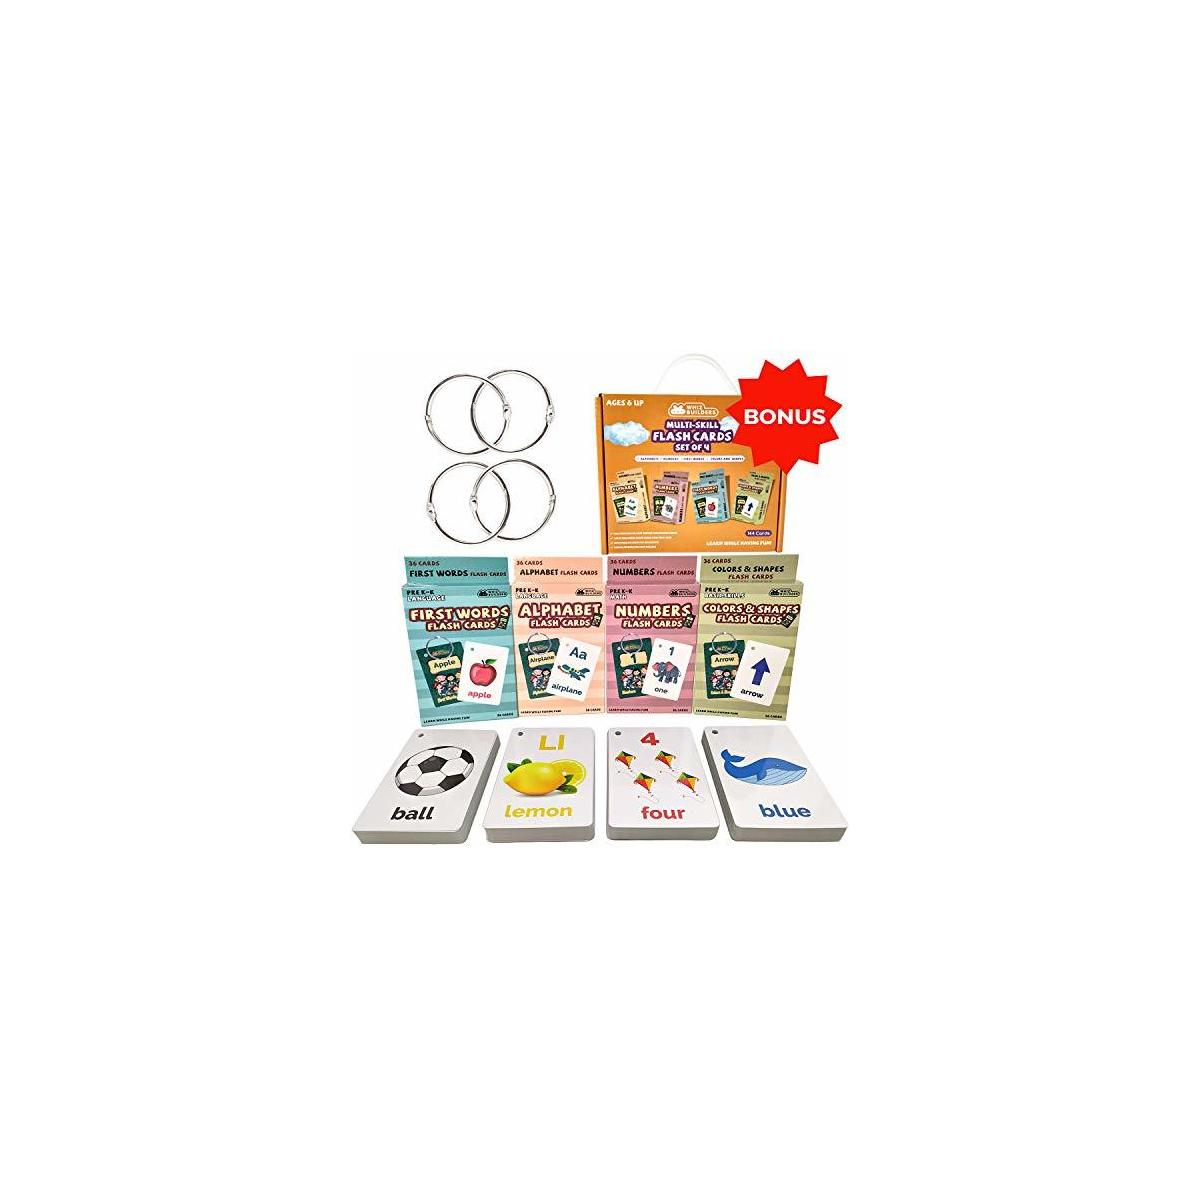 WhizBuilders Multi Skill Preschool Flash Cards Set Pack of 4 Alphabets, Numbers, First Words, Colors and Shapes Flash Cards for Children – Gift for Kindergarten and Preschool